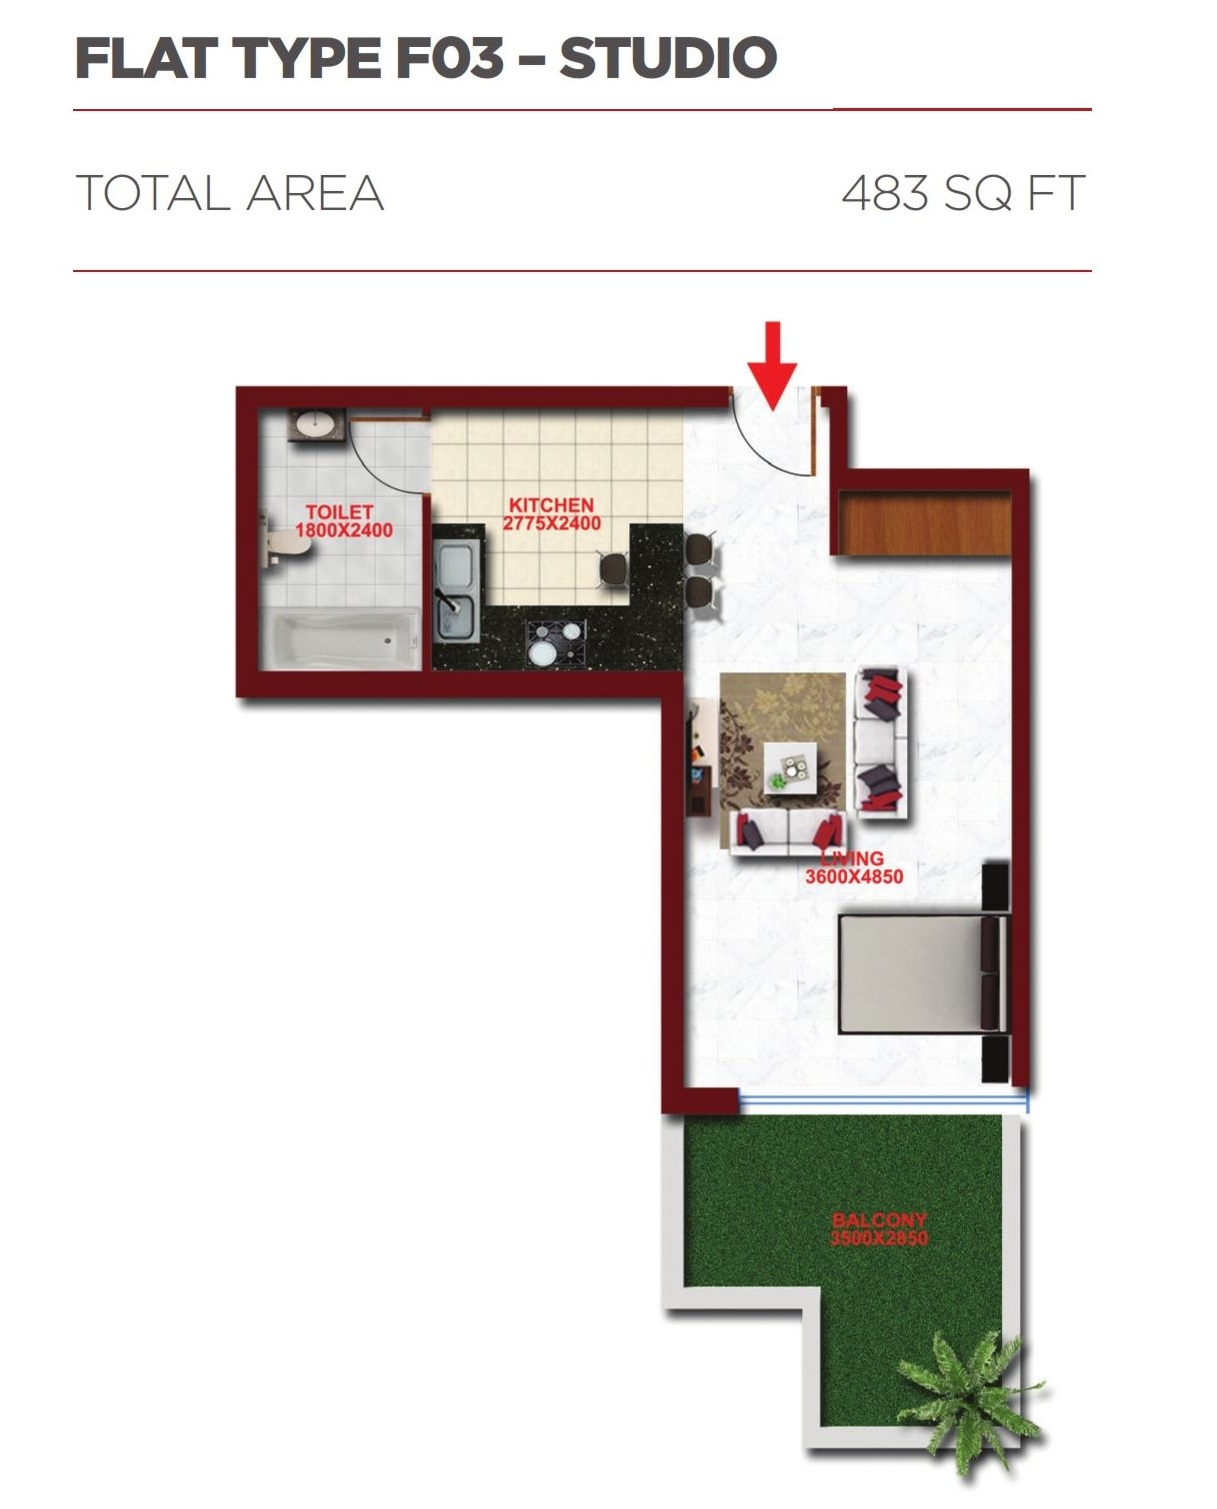 Planning of the apartment Studios, 483 in Glitz Residence 2, Dubai